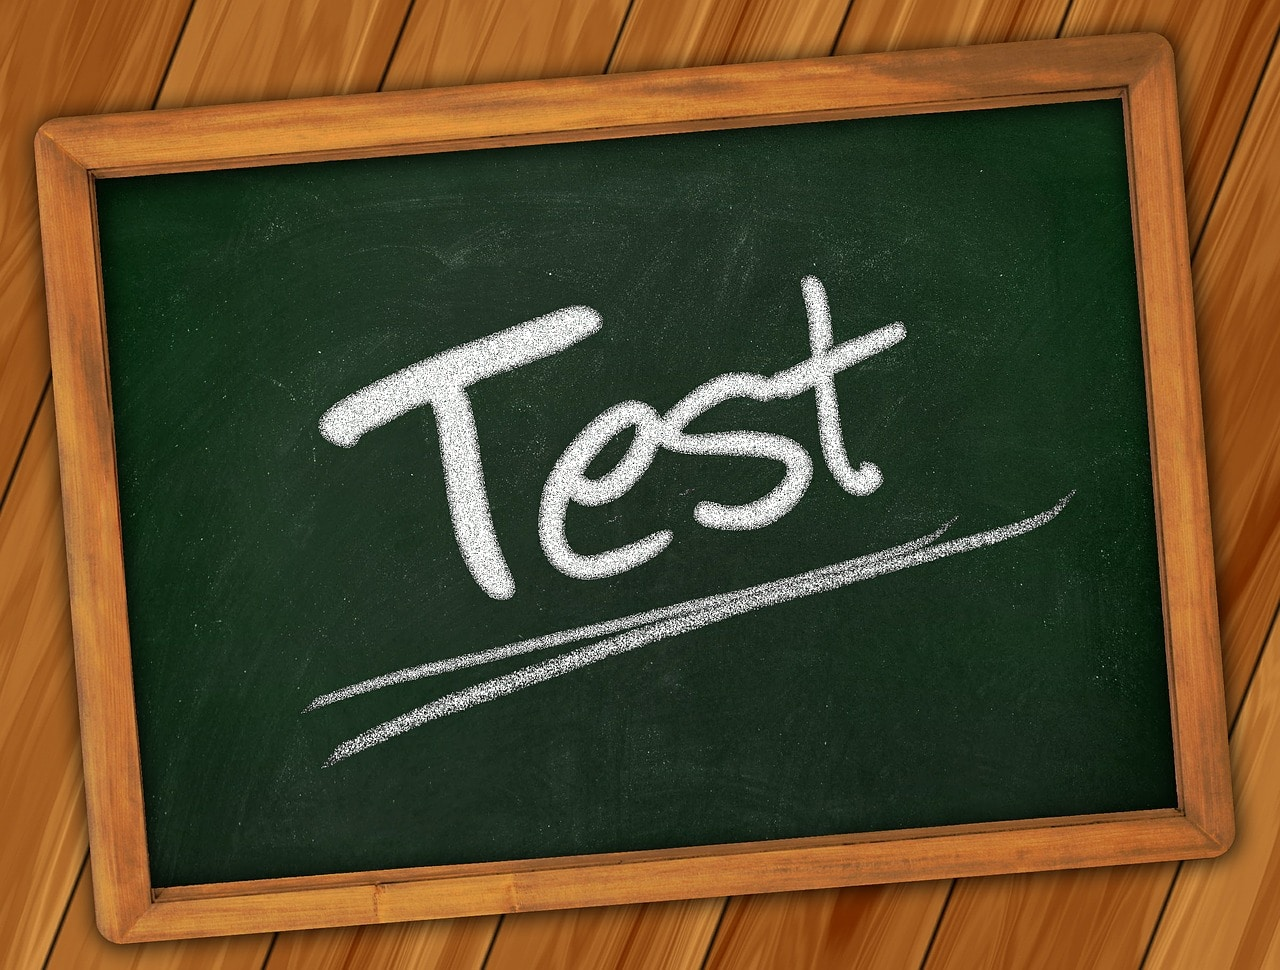 Tips on how to prepare for an English language proficiency test